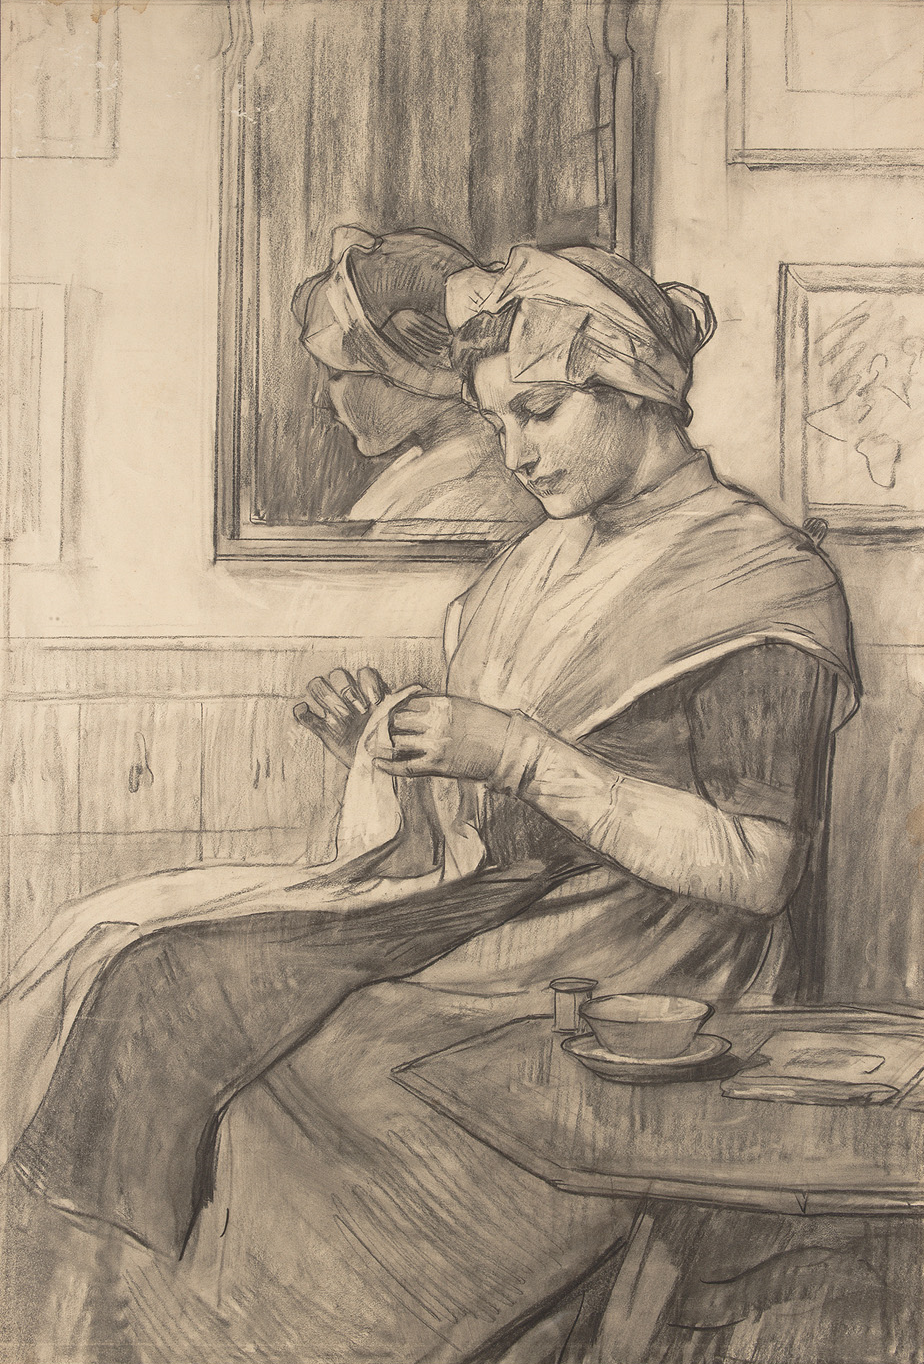 Nicolaas van der Waay,  Zittend weesmeisje met naaiwerk (Sitting orphan girl with sewing) , chalk on paper, 34 1/5 x 22 7/10 inches (86.9 x 57.6 cm.), Collection of the Amsterdam Museum, Courtesy of the Amsterdam Museum, bruikleen van Stichting Spirit, Amsterdam, The Netherlands